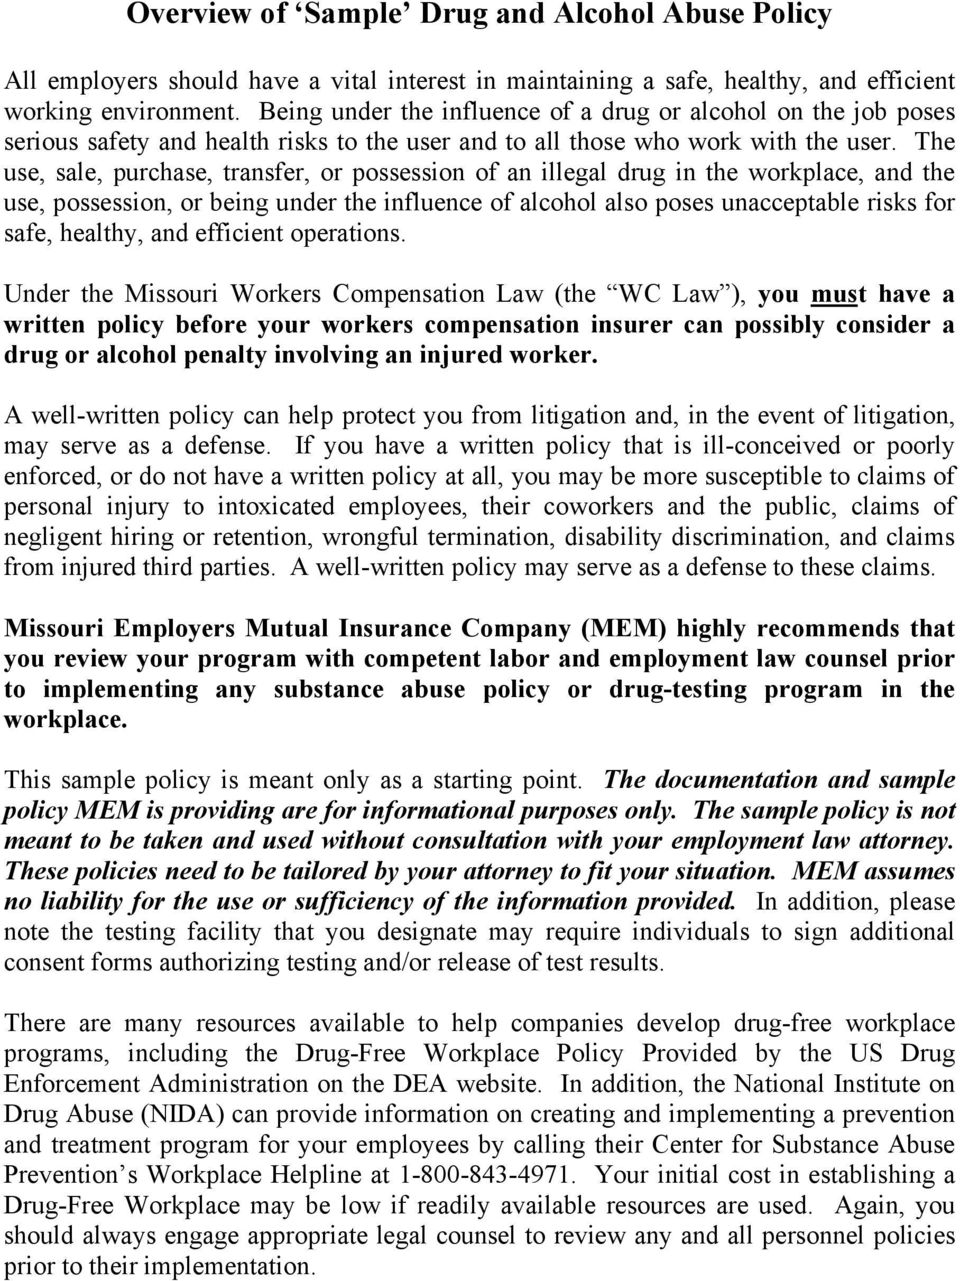 The use, sale, purchase, transfer, or possession of an illegal drug in the workplace, and the use, possession, or being under the influence of alcohol also poses unacceptable risks for safe, healthy,